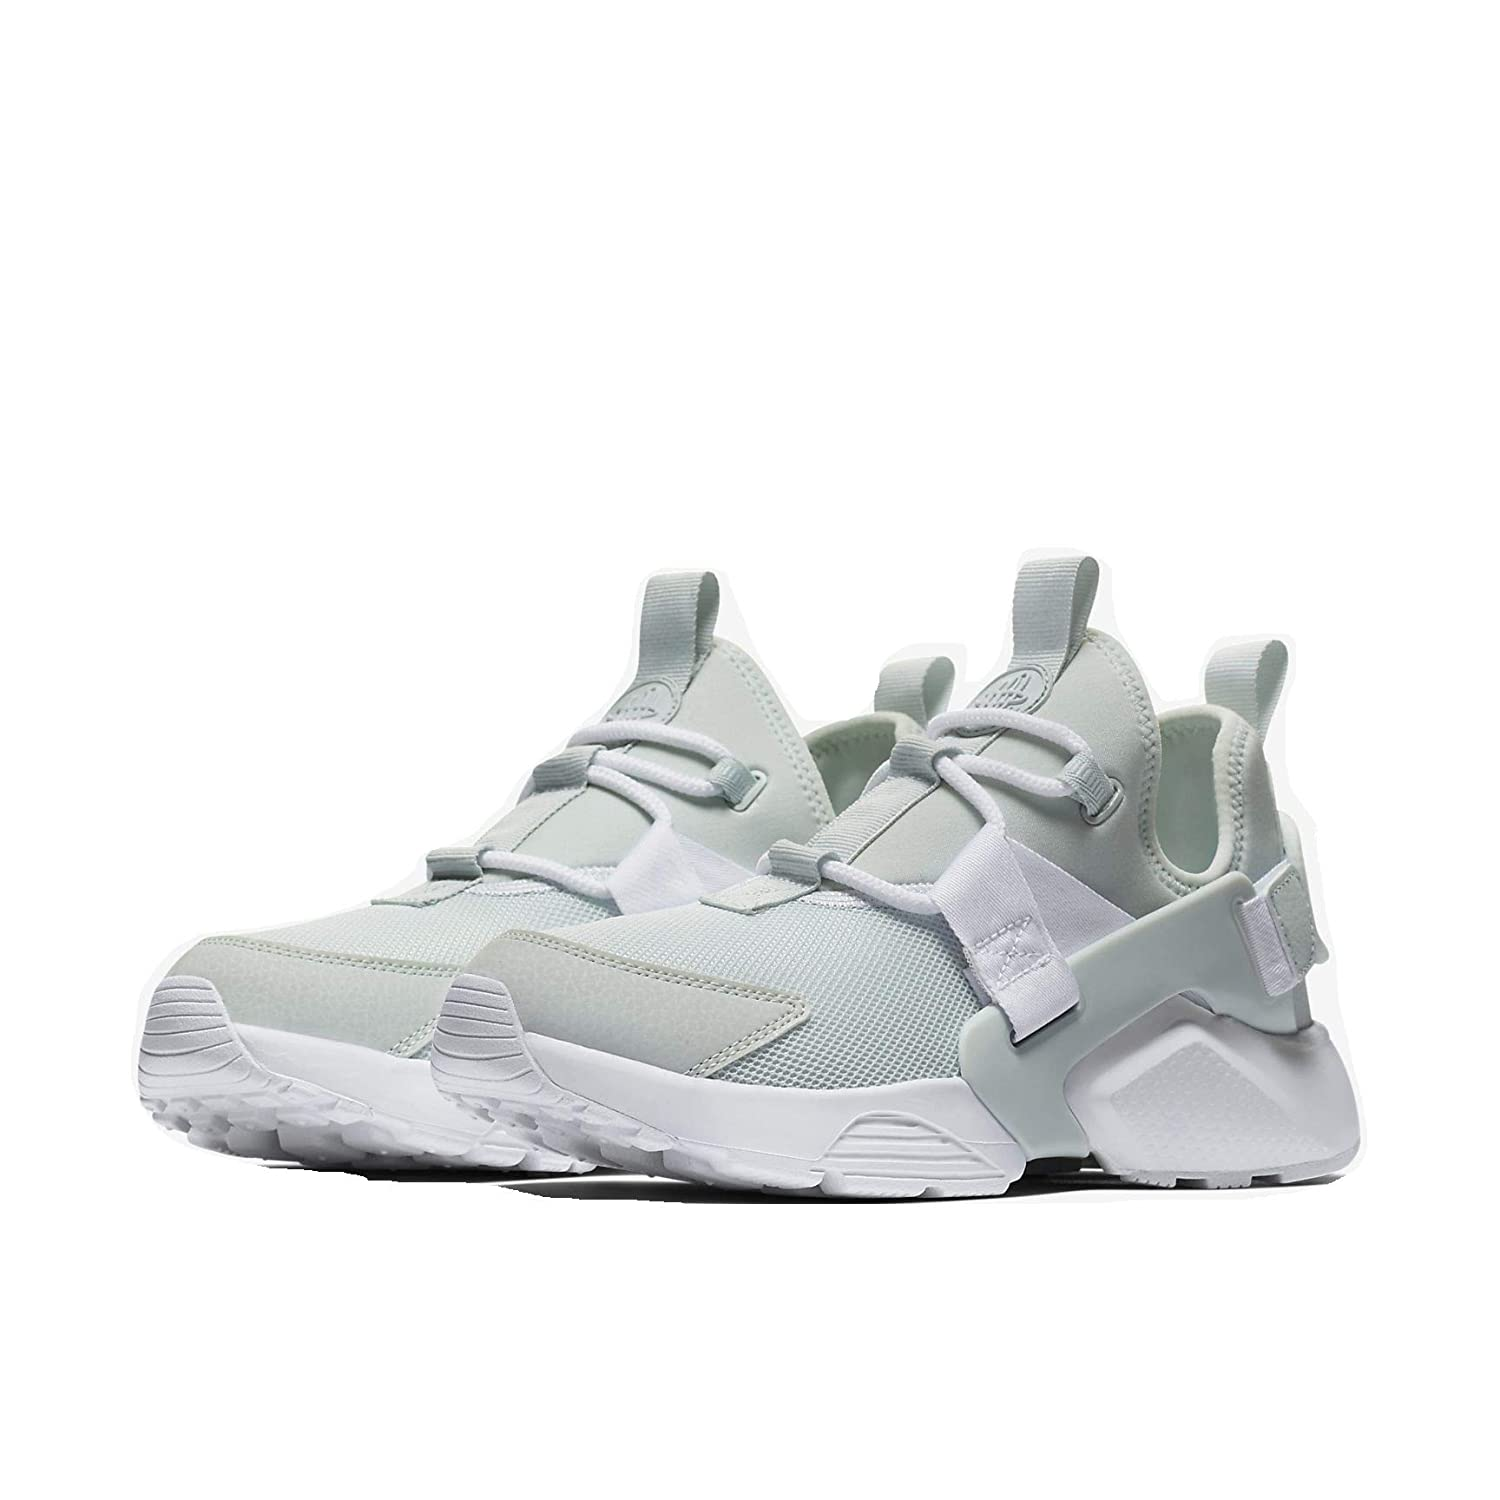 Nike Womens Air Huarache City Low Sneaker Shoes